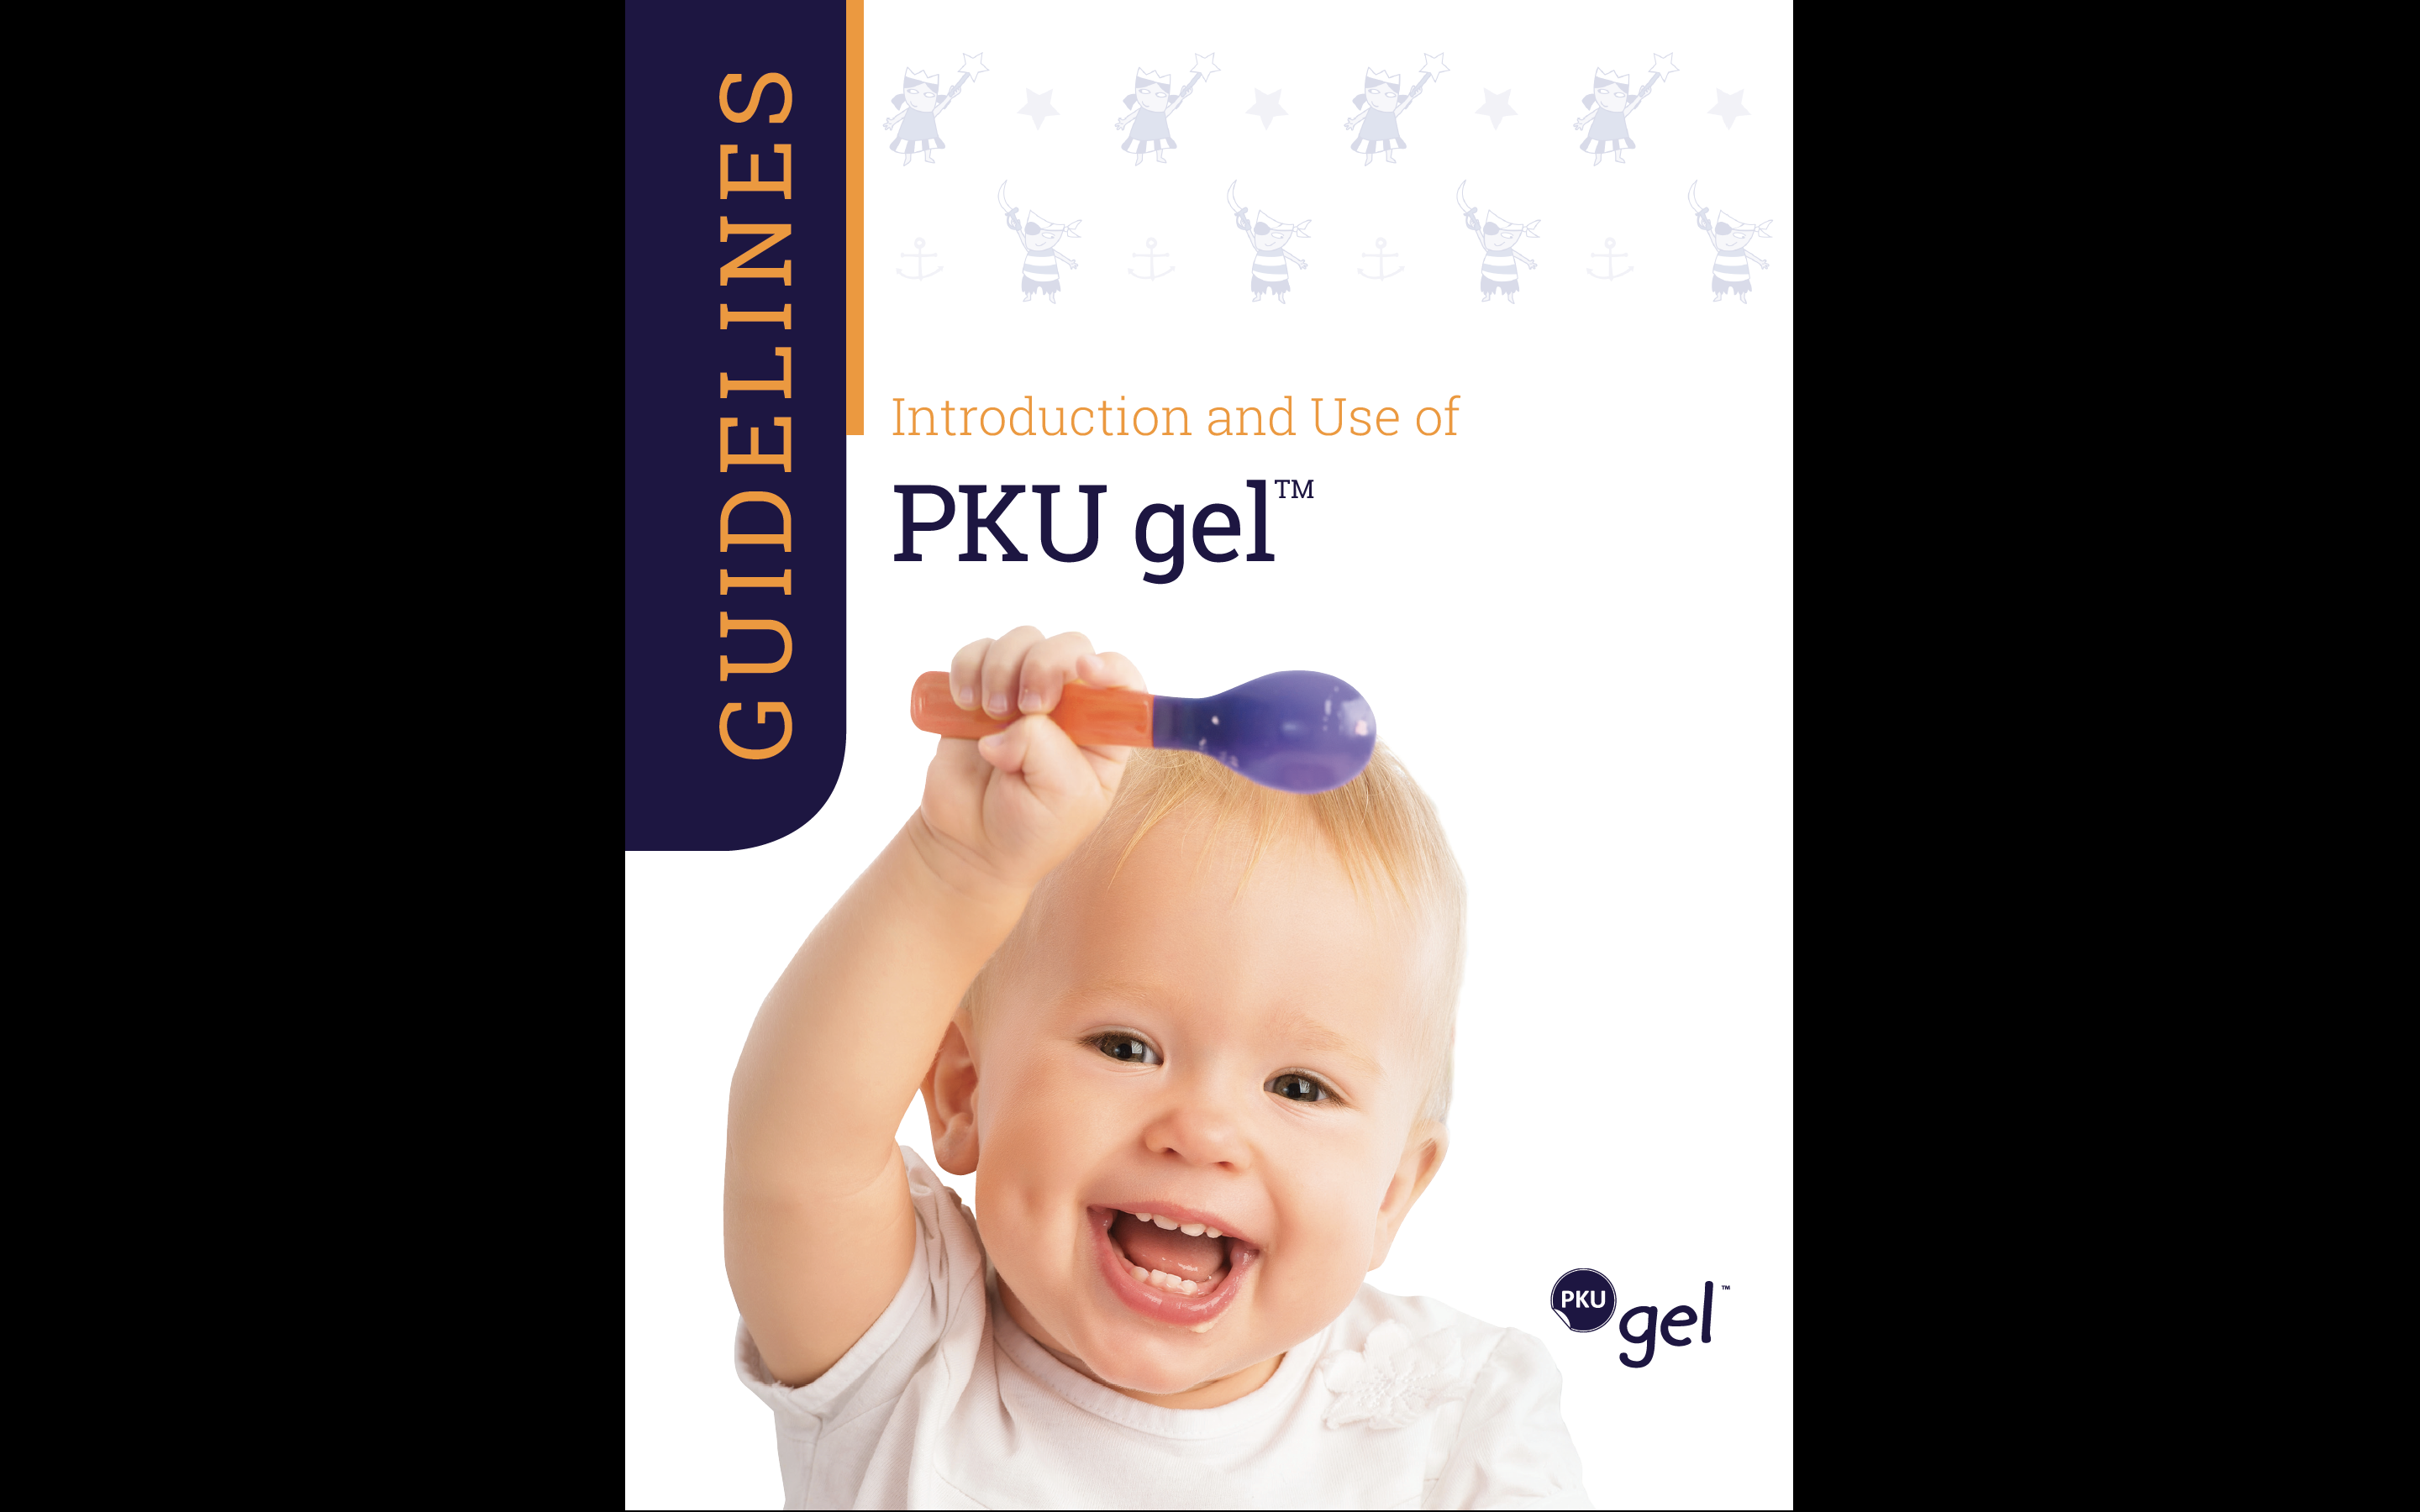 PKU gel Guidelines